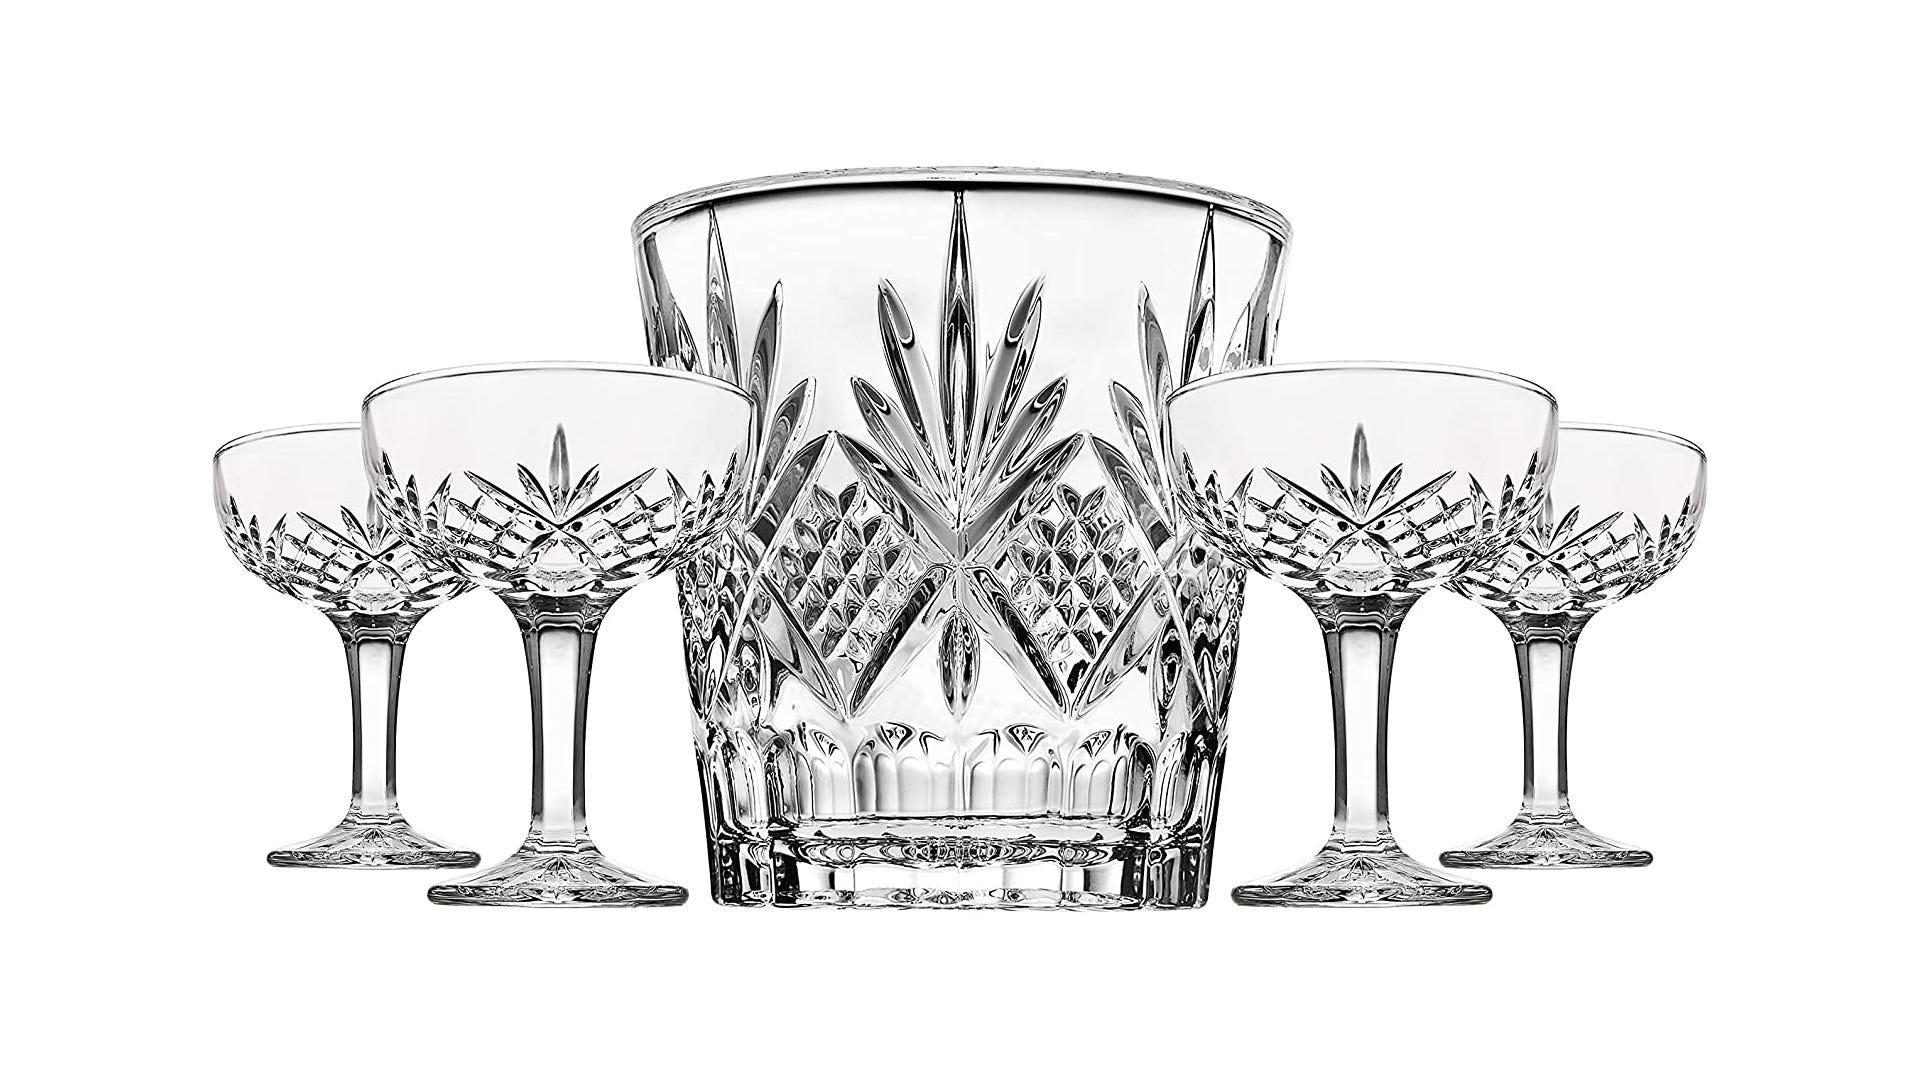 Four cut glass U-shaped coupe glasses with large cut glass ice bucket in the center.